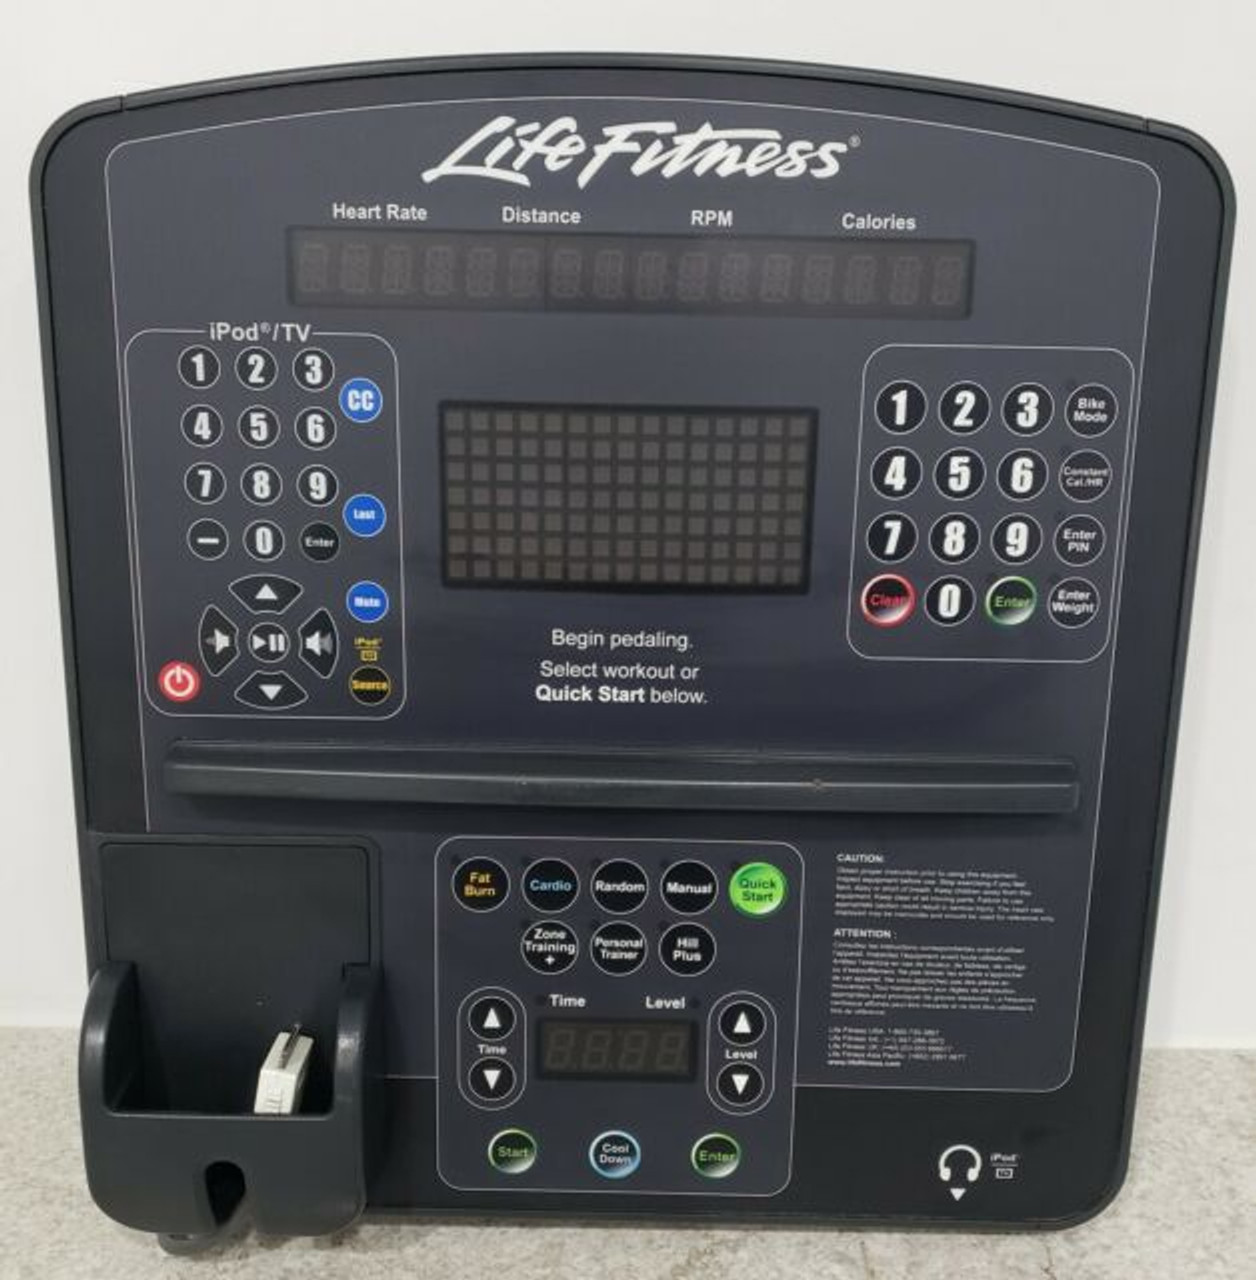 Life Fitness Integrity Series Console